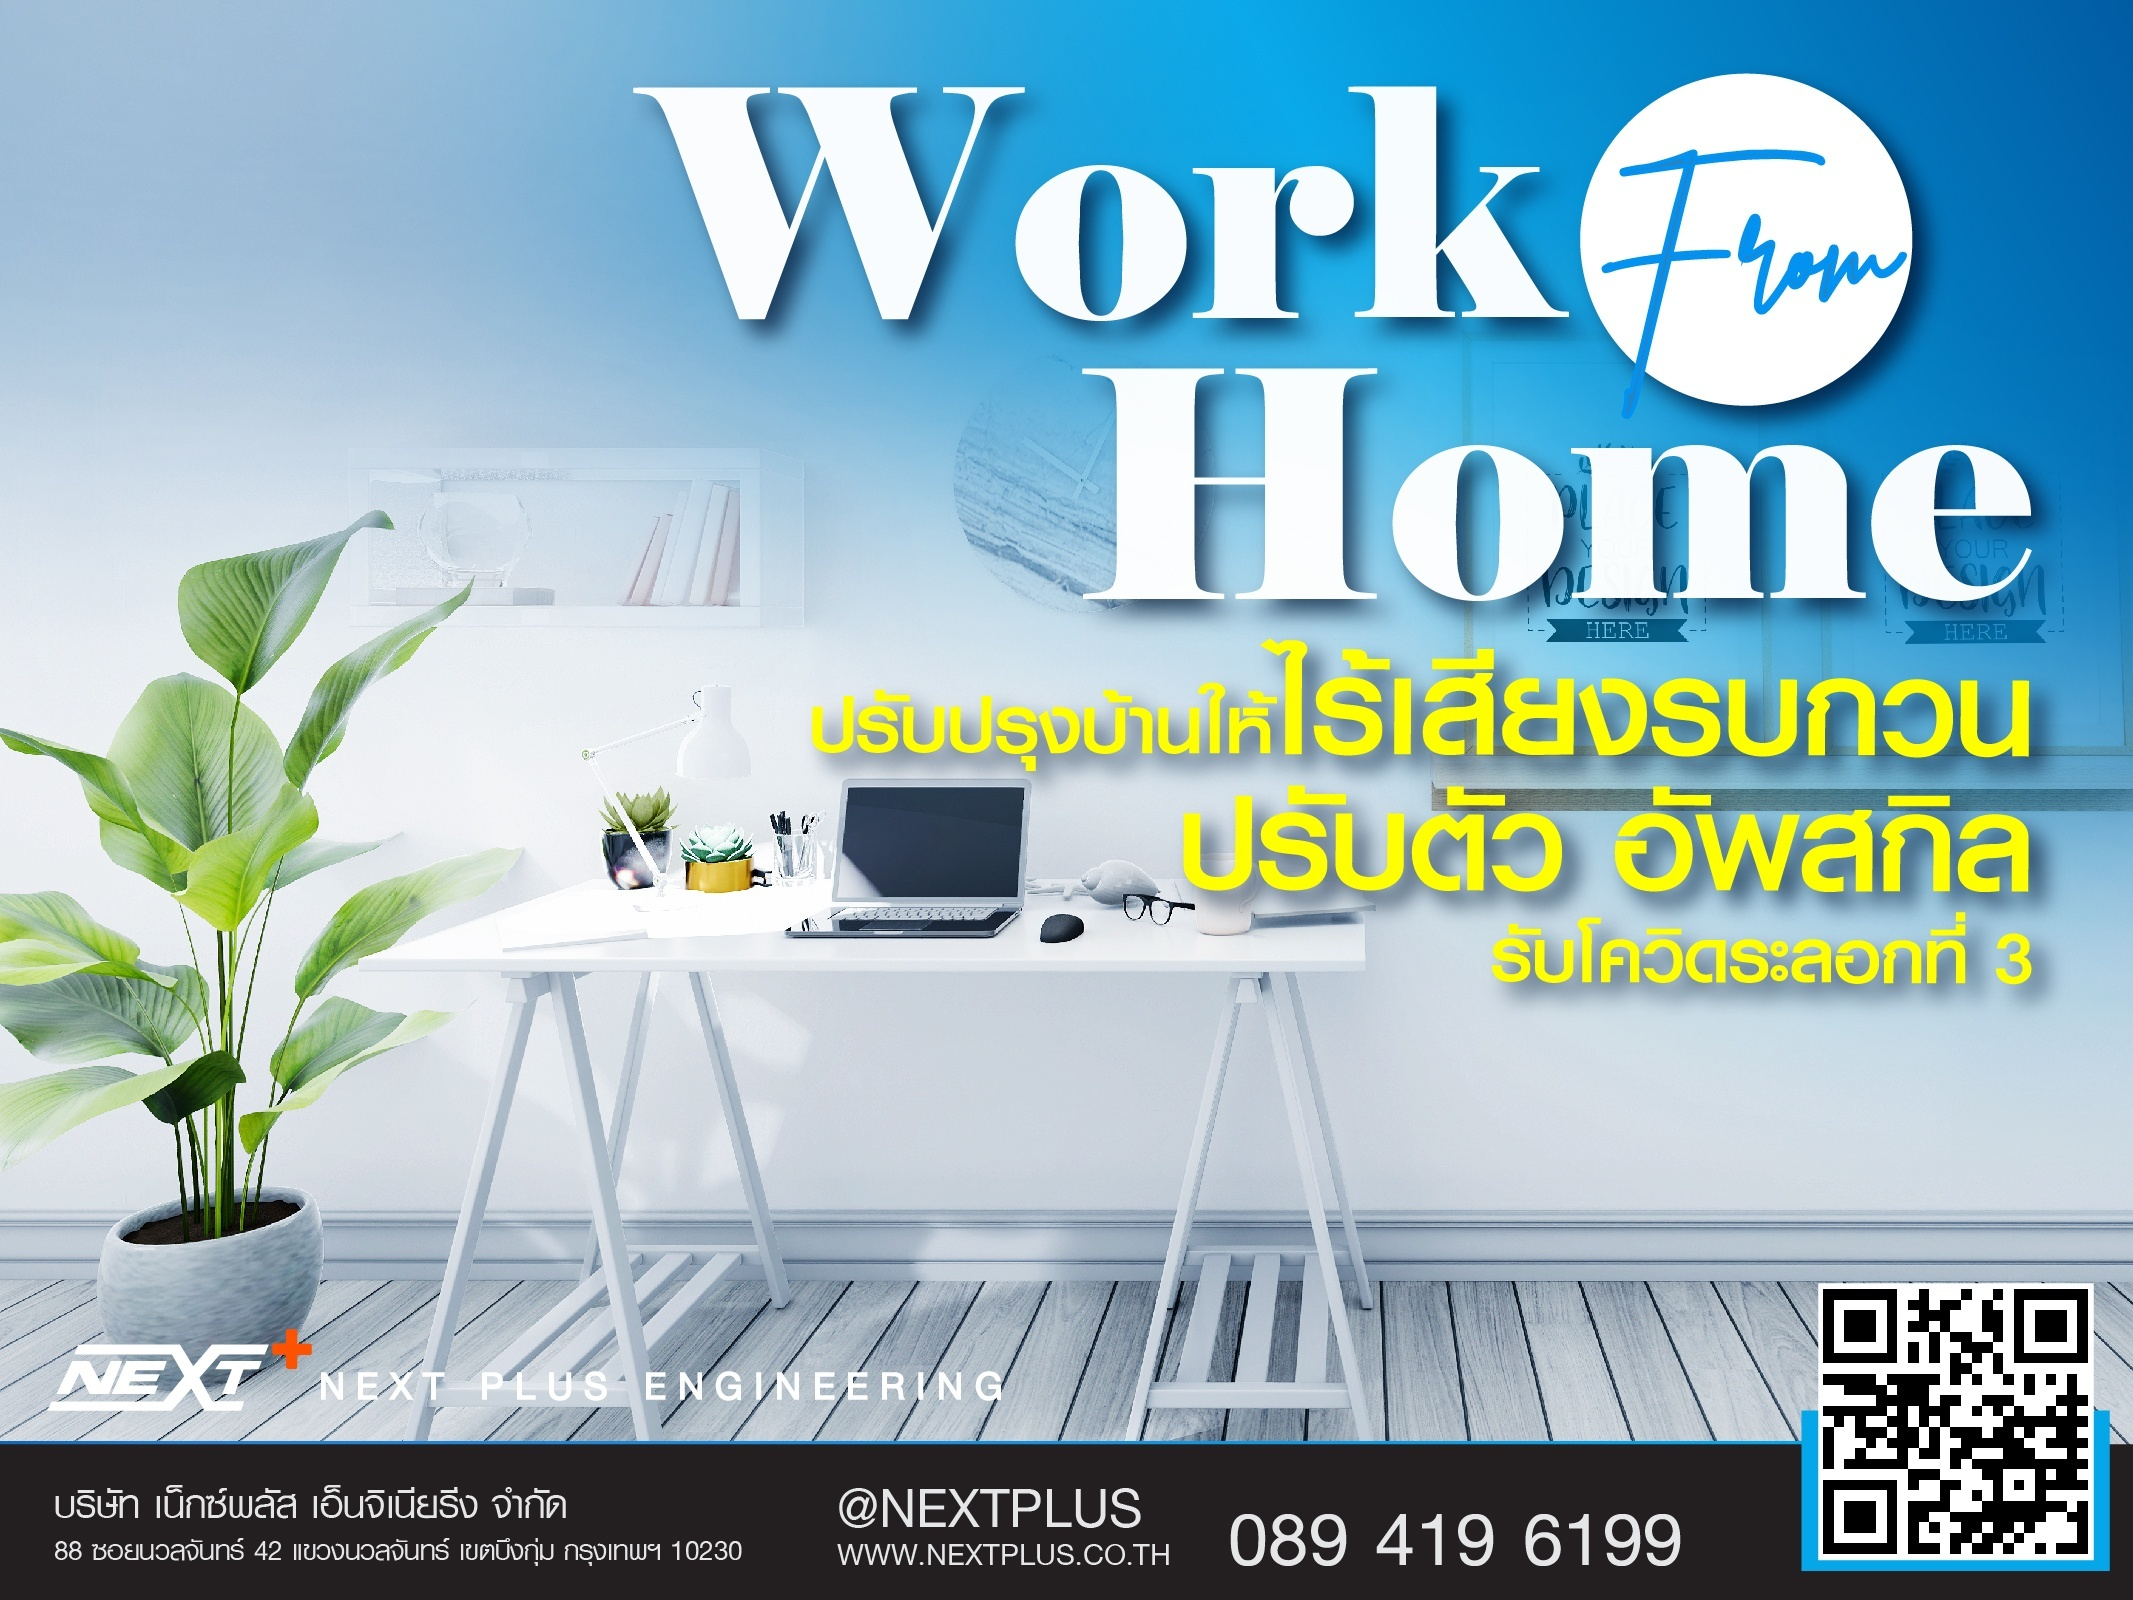 Work From Home- Next Plus Engineering